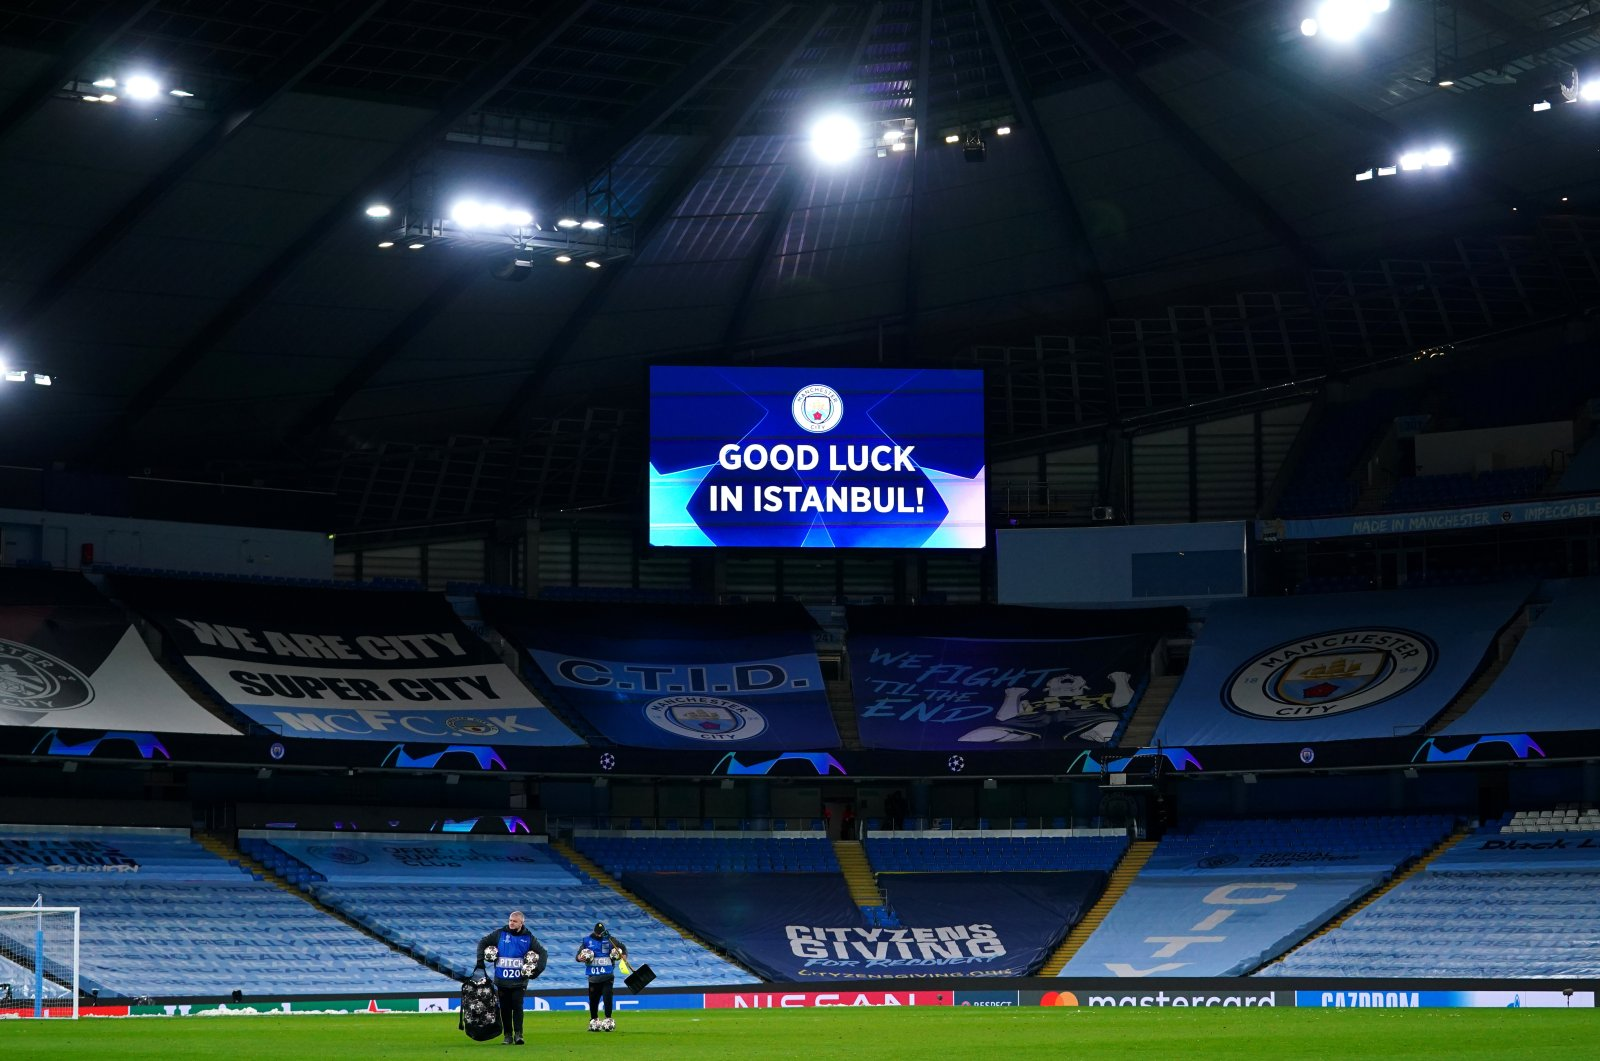 """The LED screen inside the stadium displays a message of """"Good luck in Istanbul!"""" with a picture of the Manchester City crest after the UEFA Champions League Semi-Final Second Leg match between Manchester City and Paris Saint-Germain at Etihad Stadium, in Manchester, U.K., May 4, 2021. (Photo by Getty Images)"""